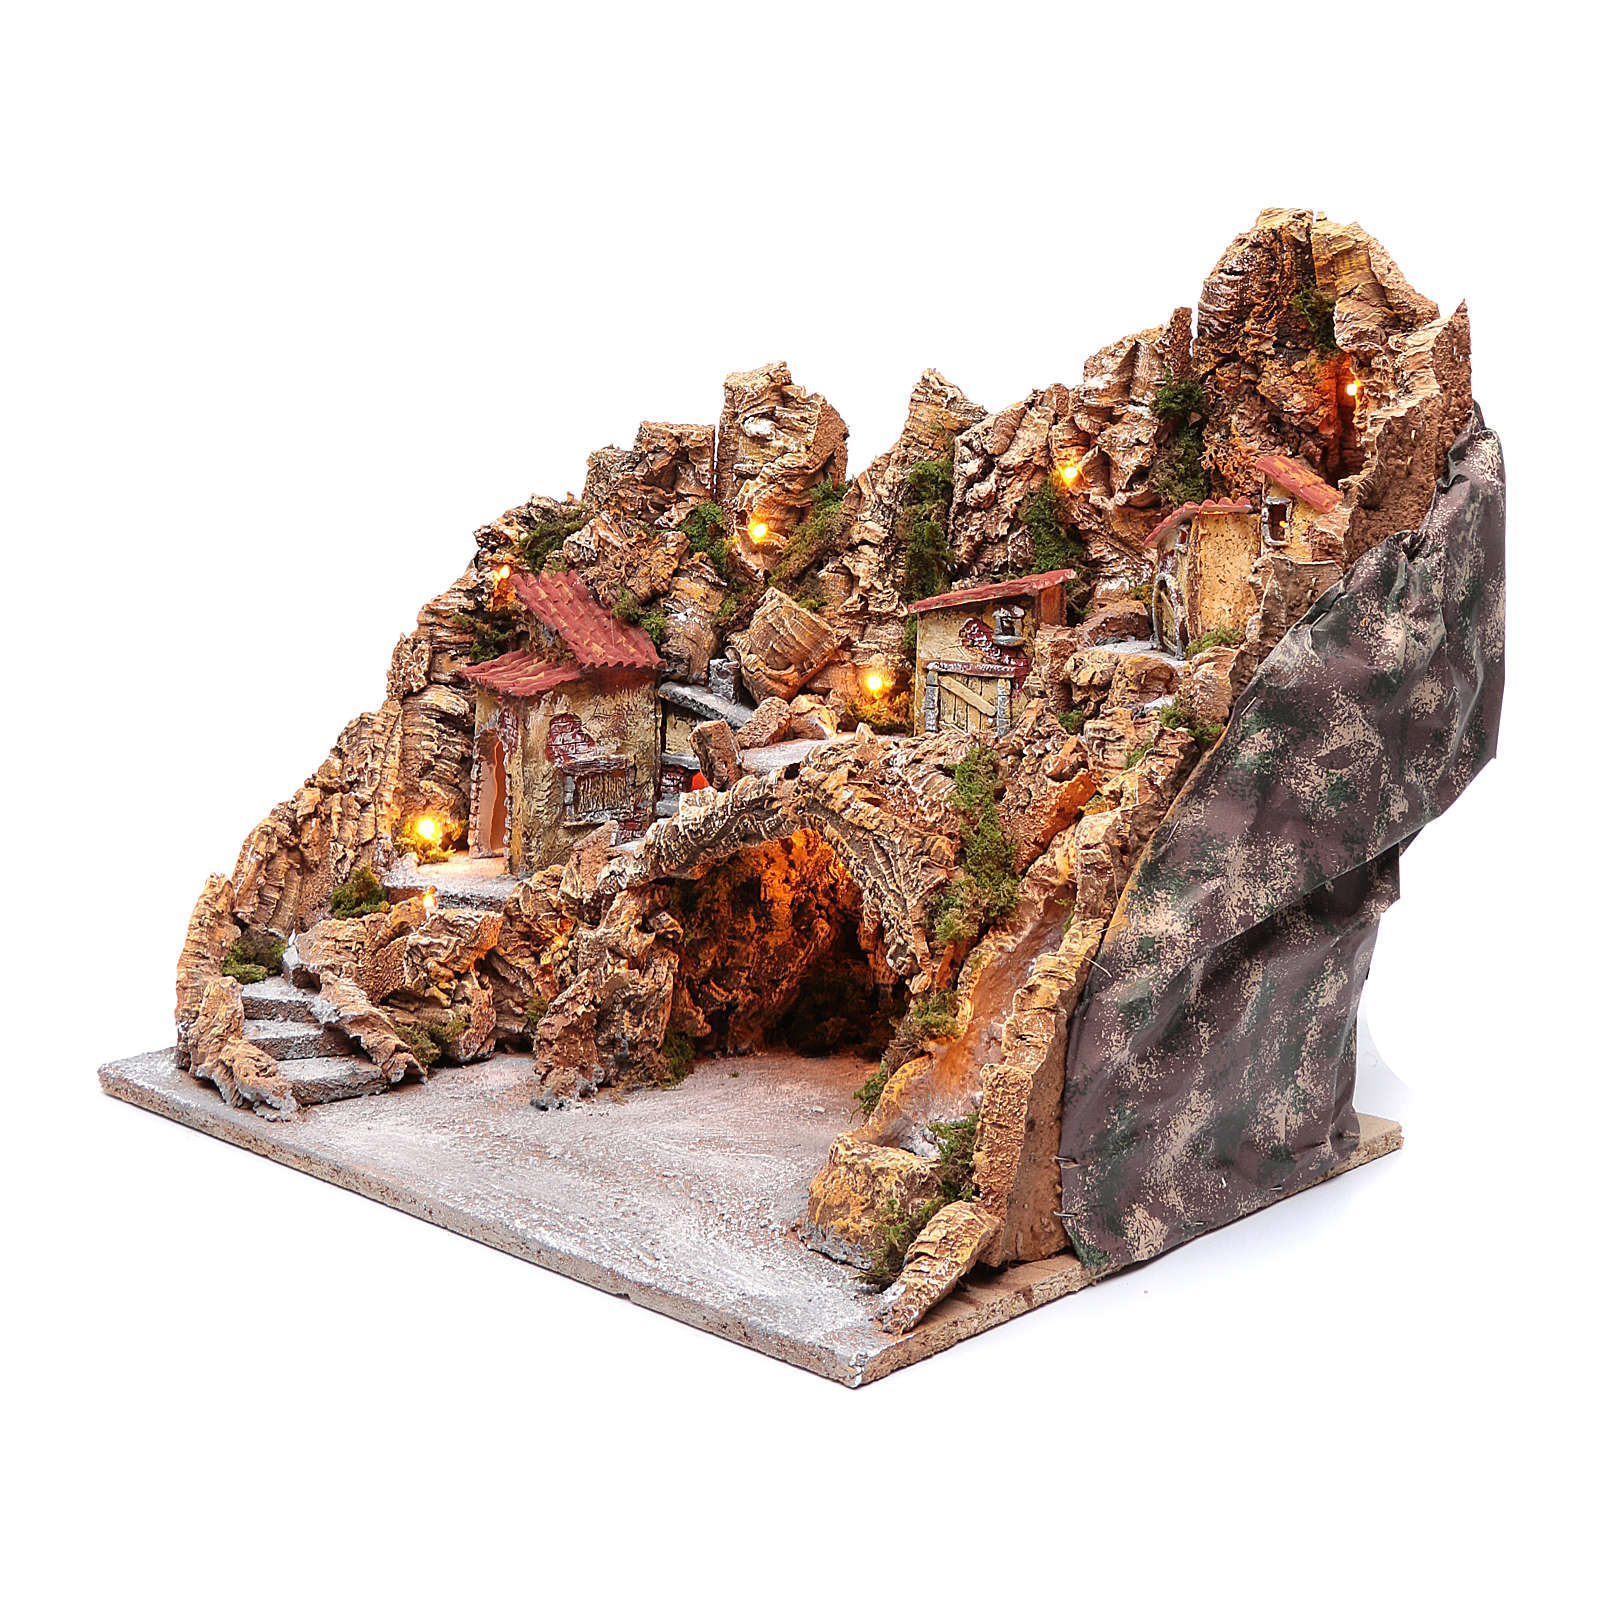 Nativity scene hut with stream and oven Neapolitan nativity scene 45X50X40 cm 4